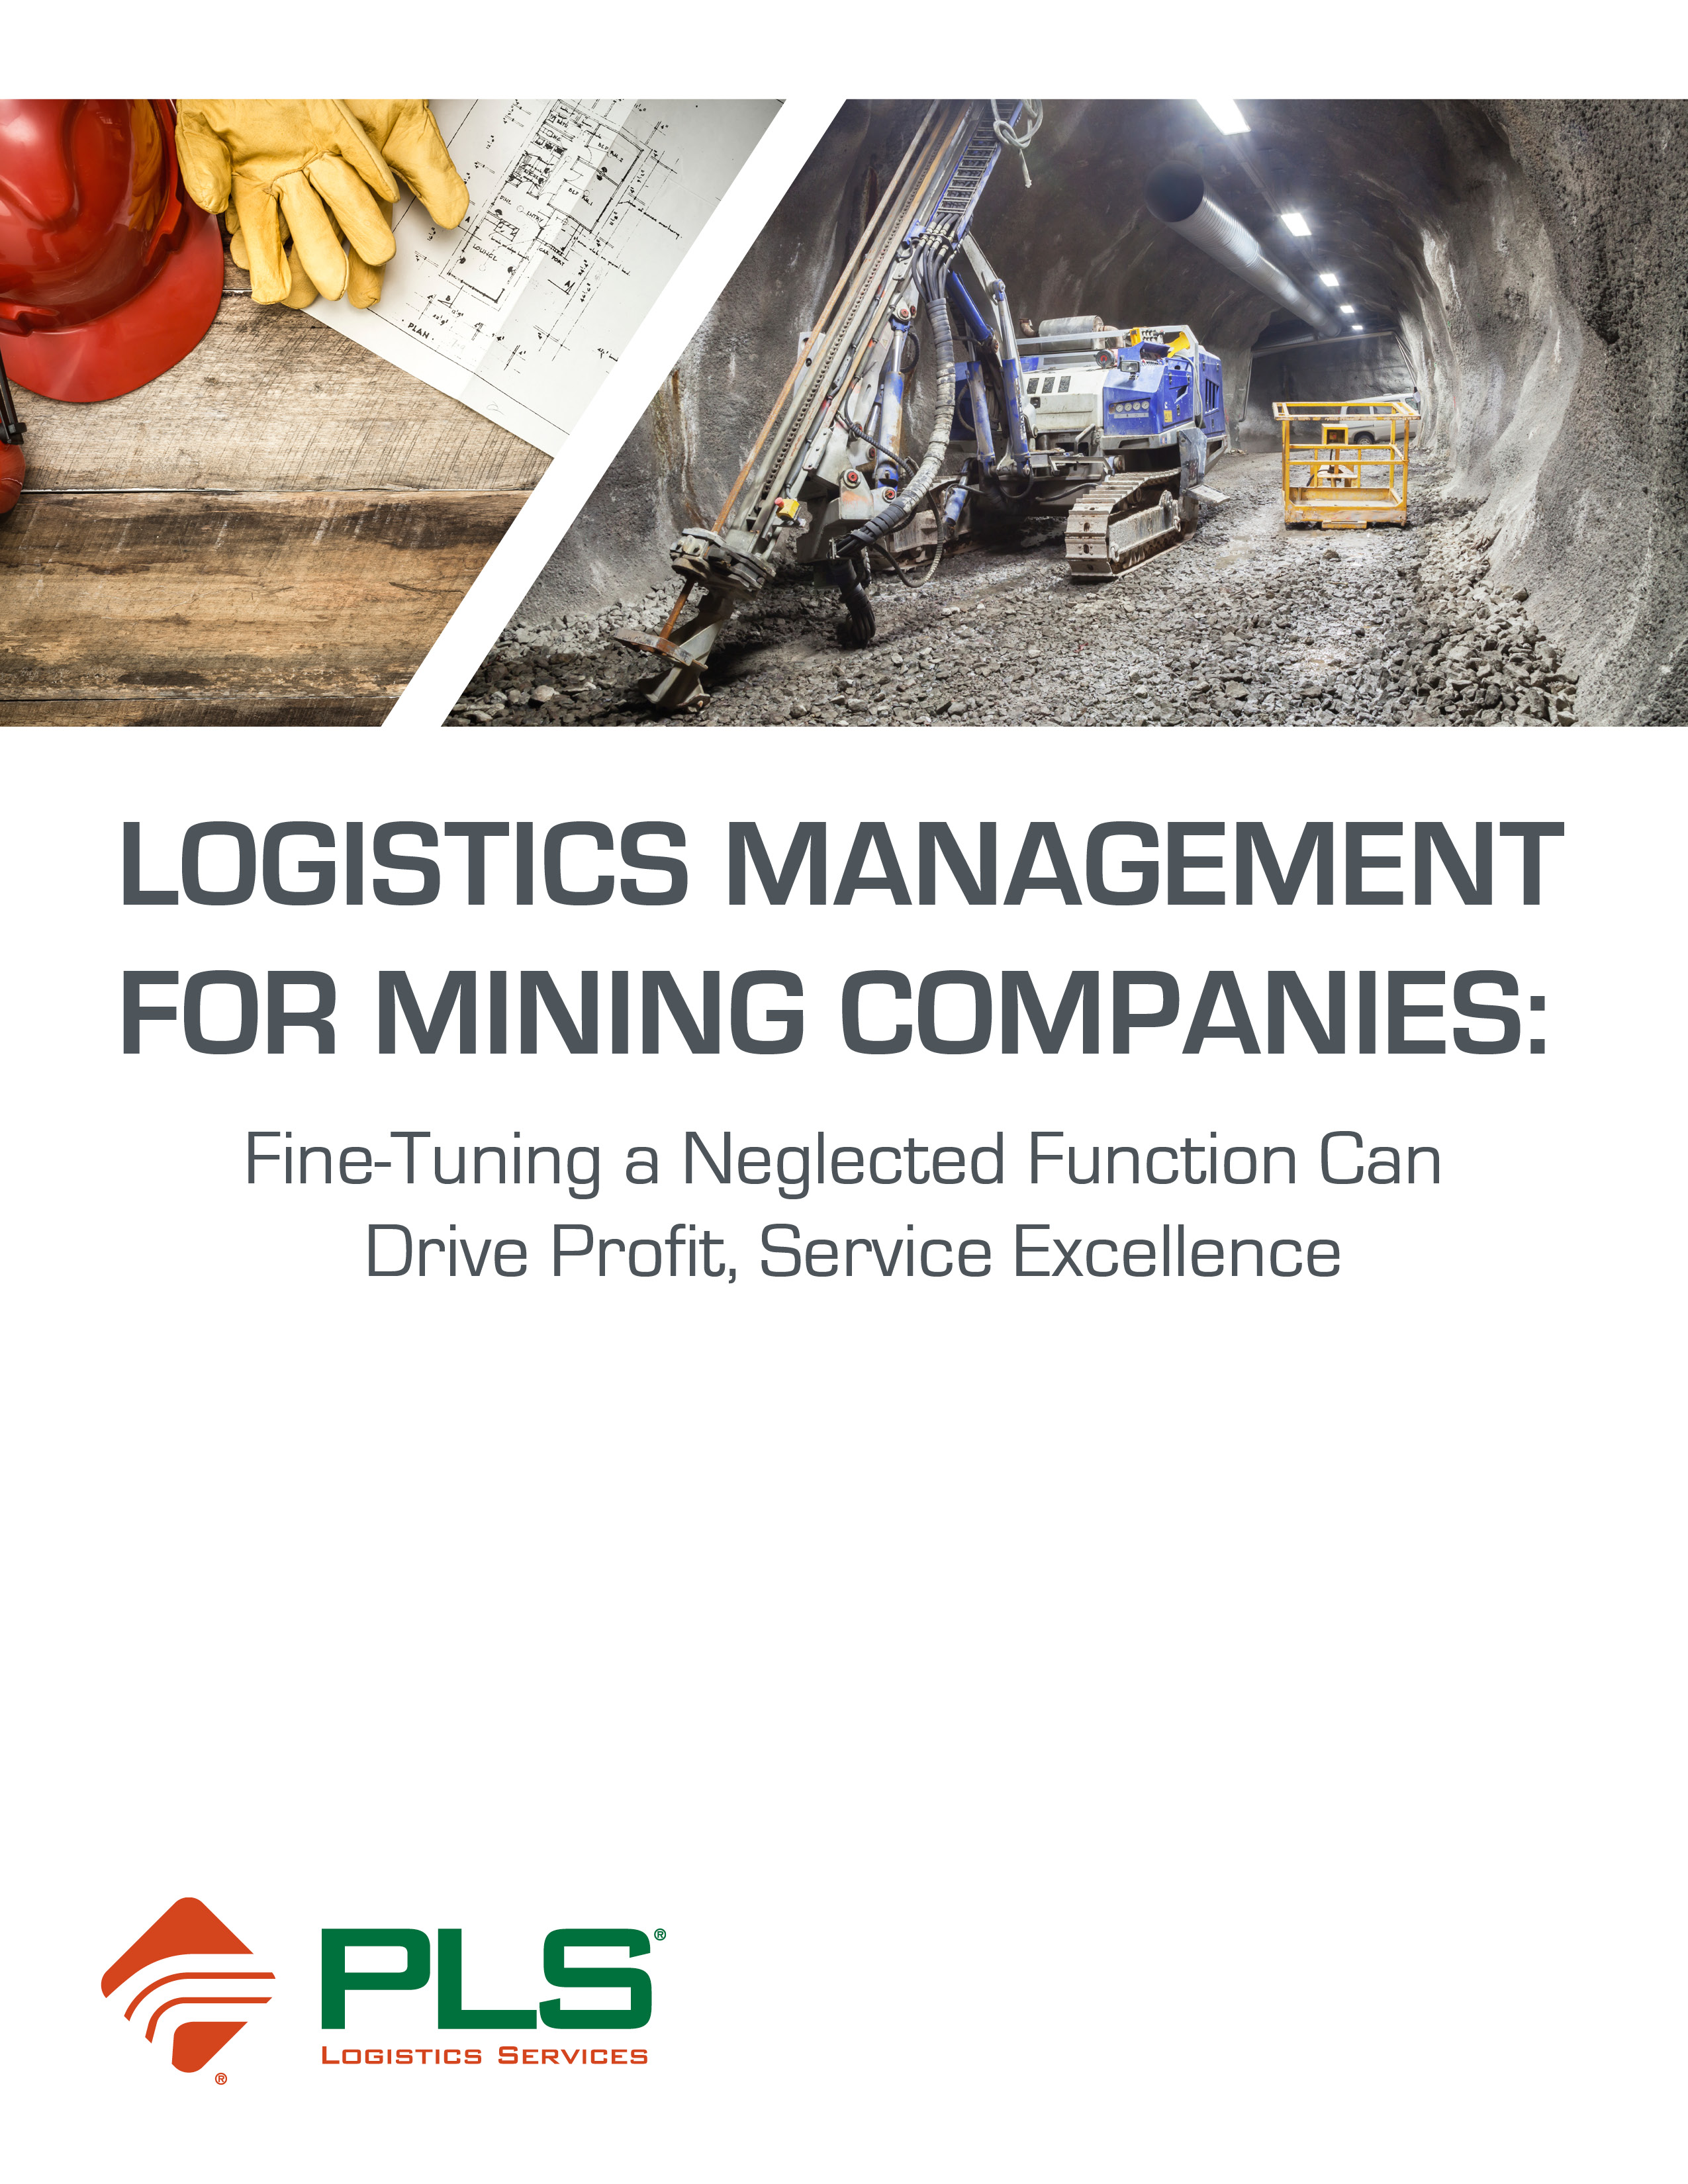 [Logistics Management for Mining Companies White Paper Cover]